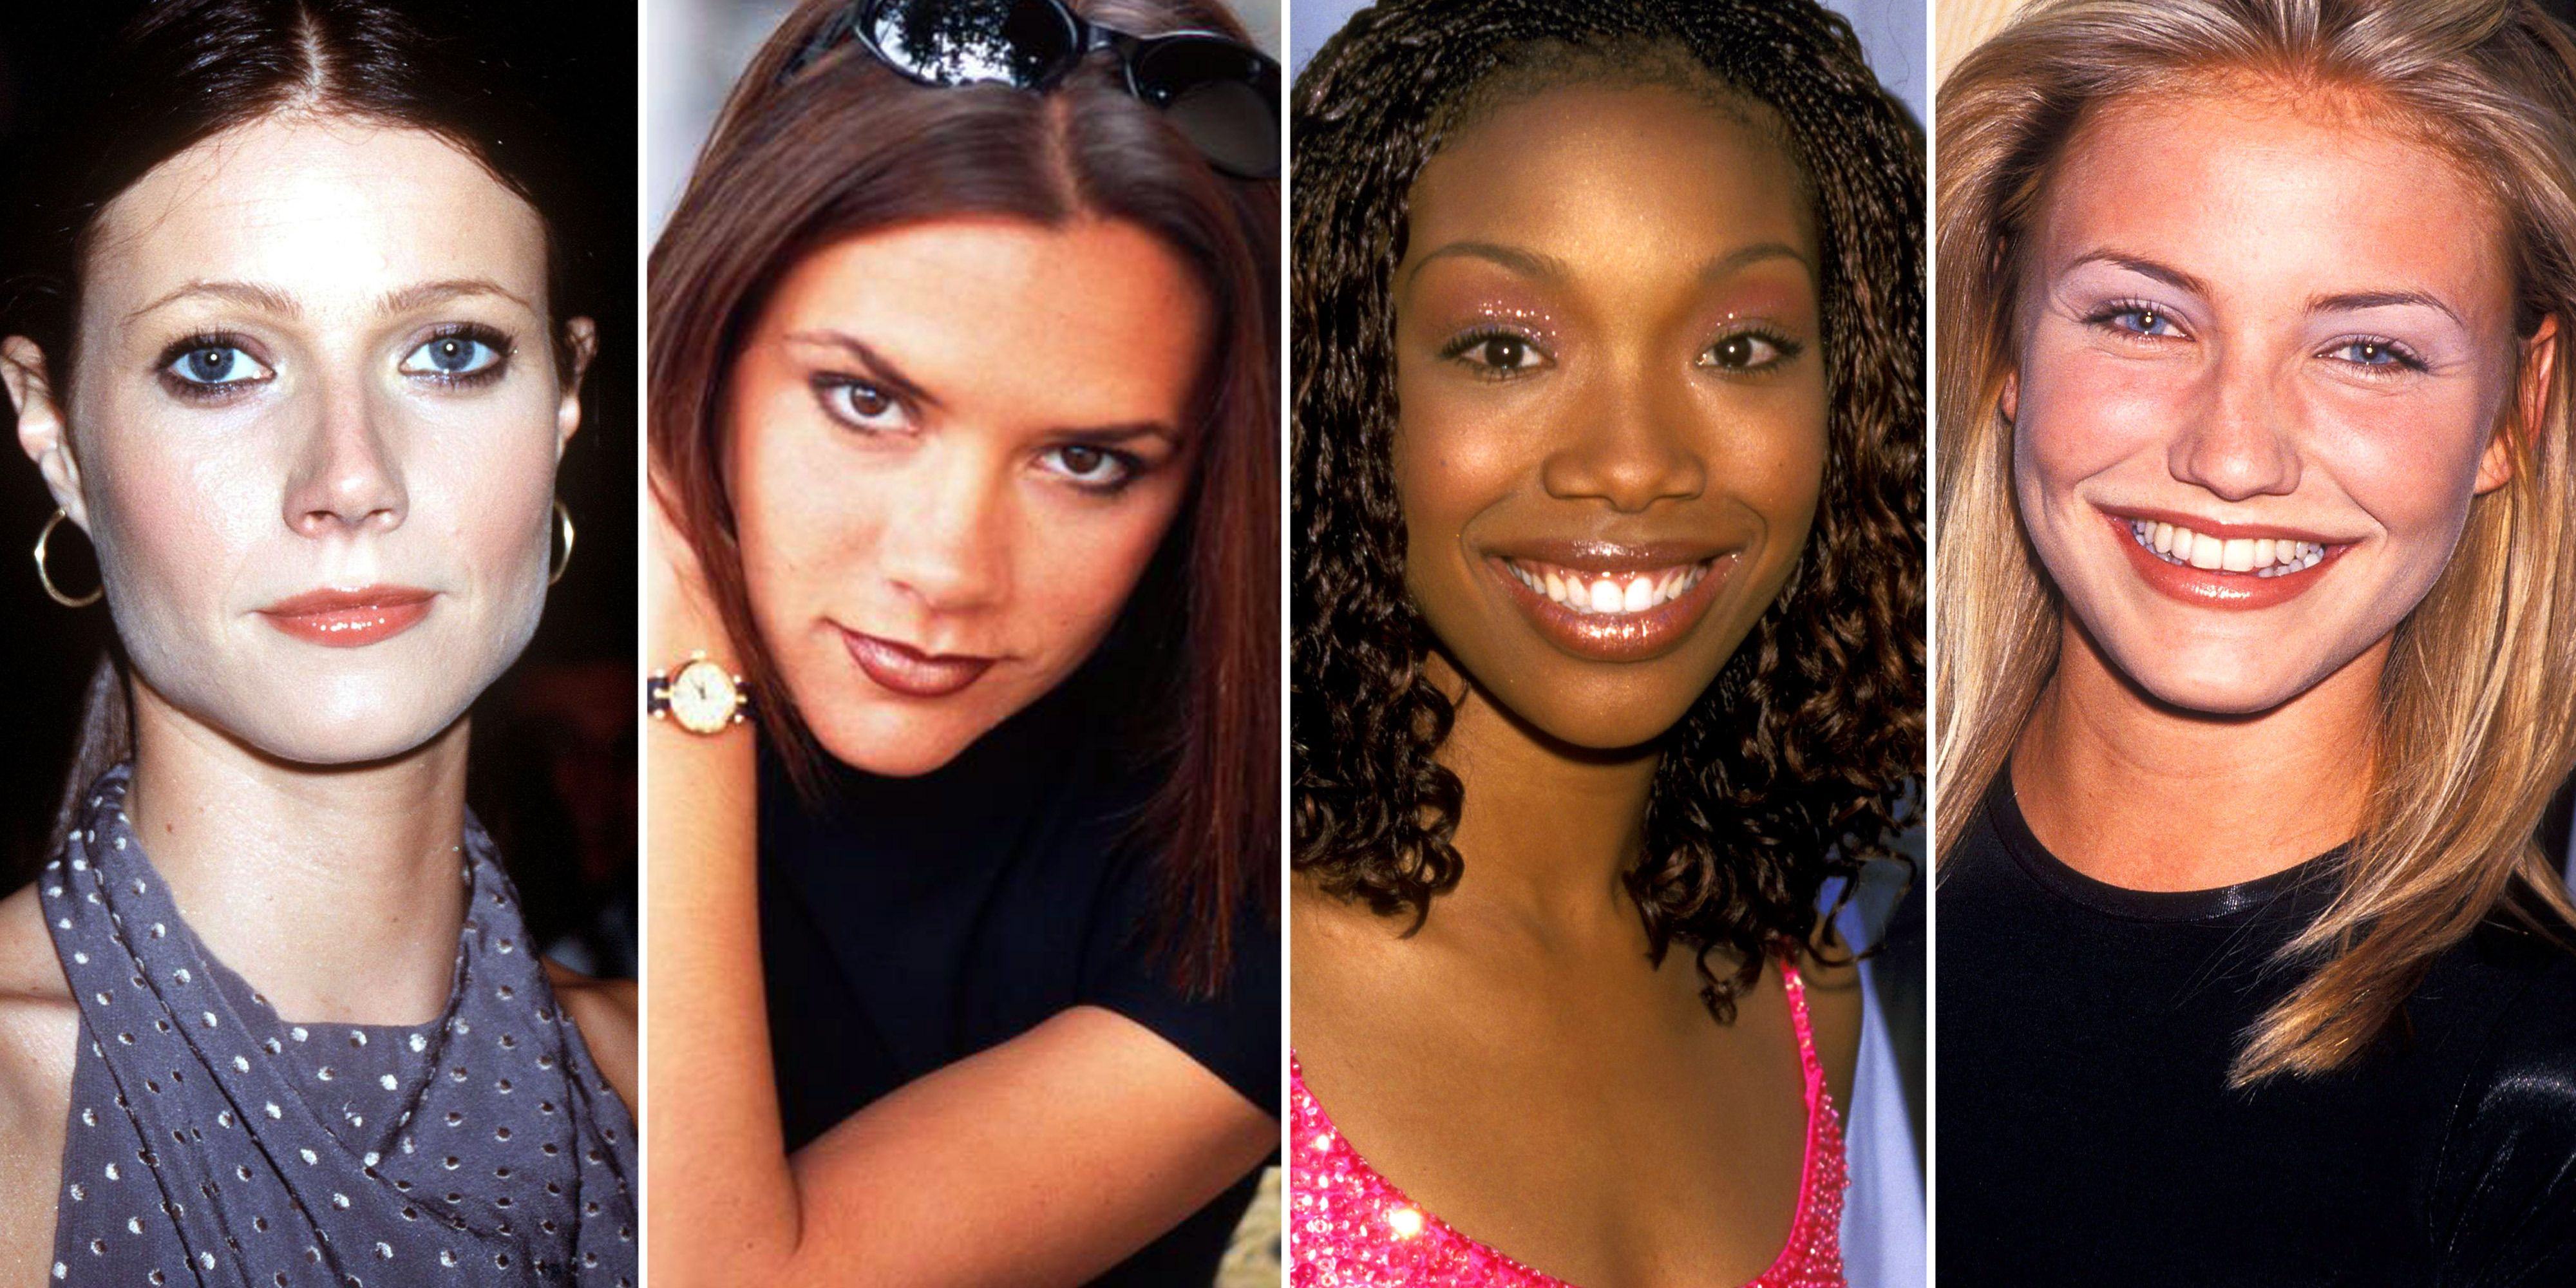 The Best 90s Makeup Looks To Recreate 1990s Makeup Ideas For Halloween Costume